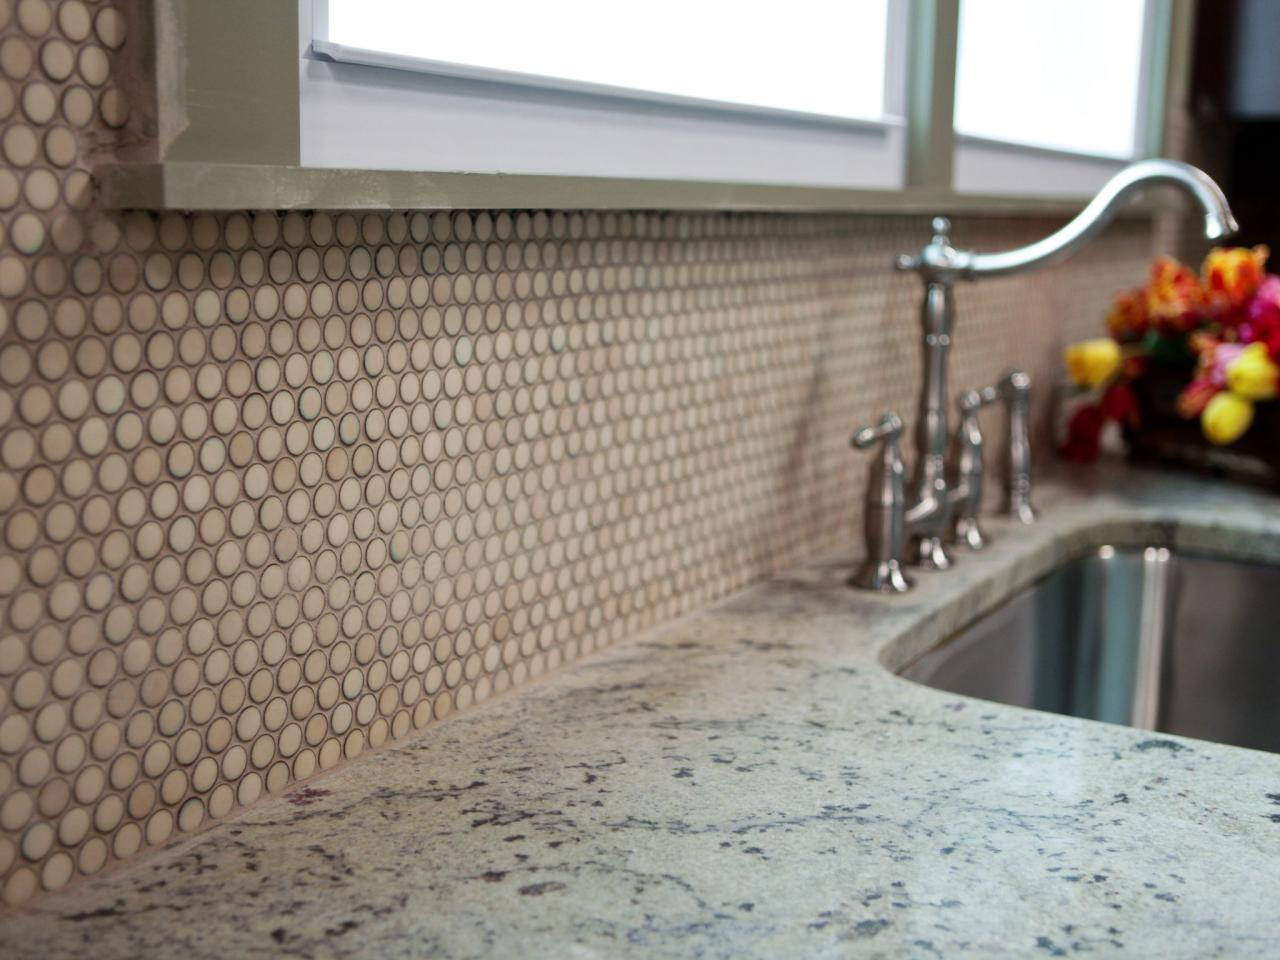 Mosaic tile backsplash ideas pictures tips from hgtv hgtv Backsplash wall tile